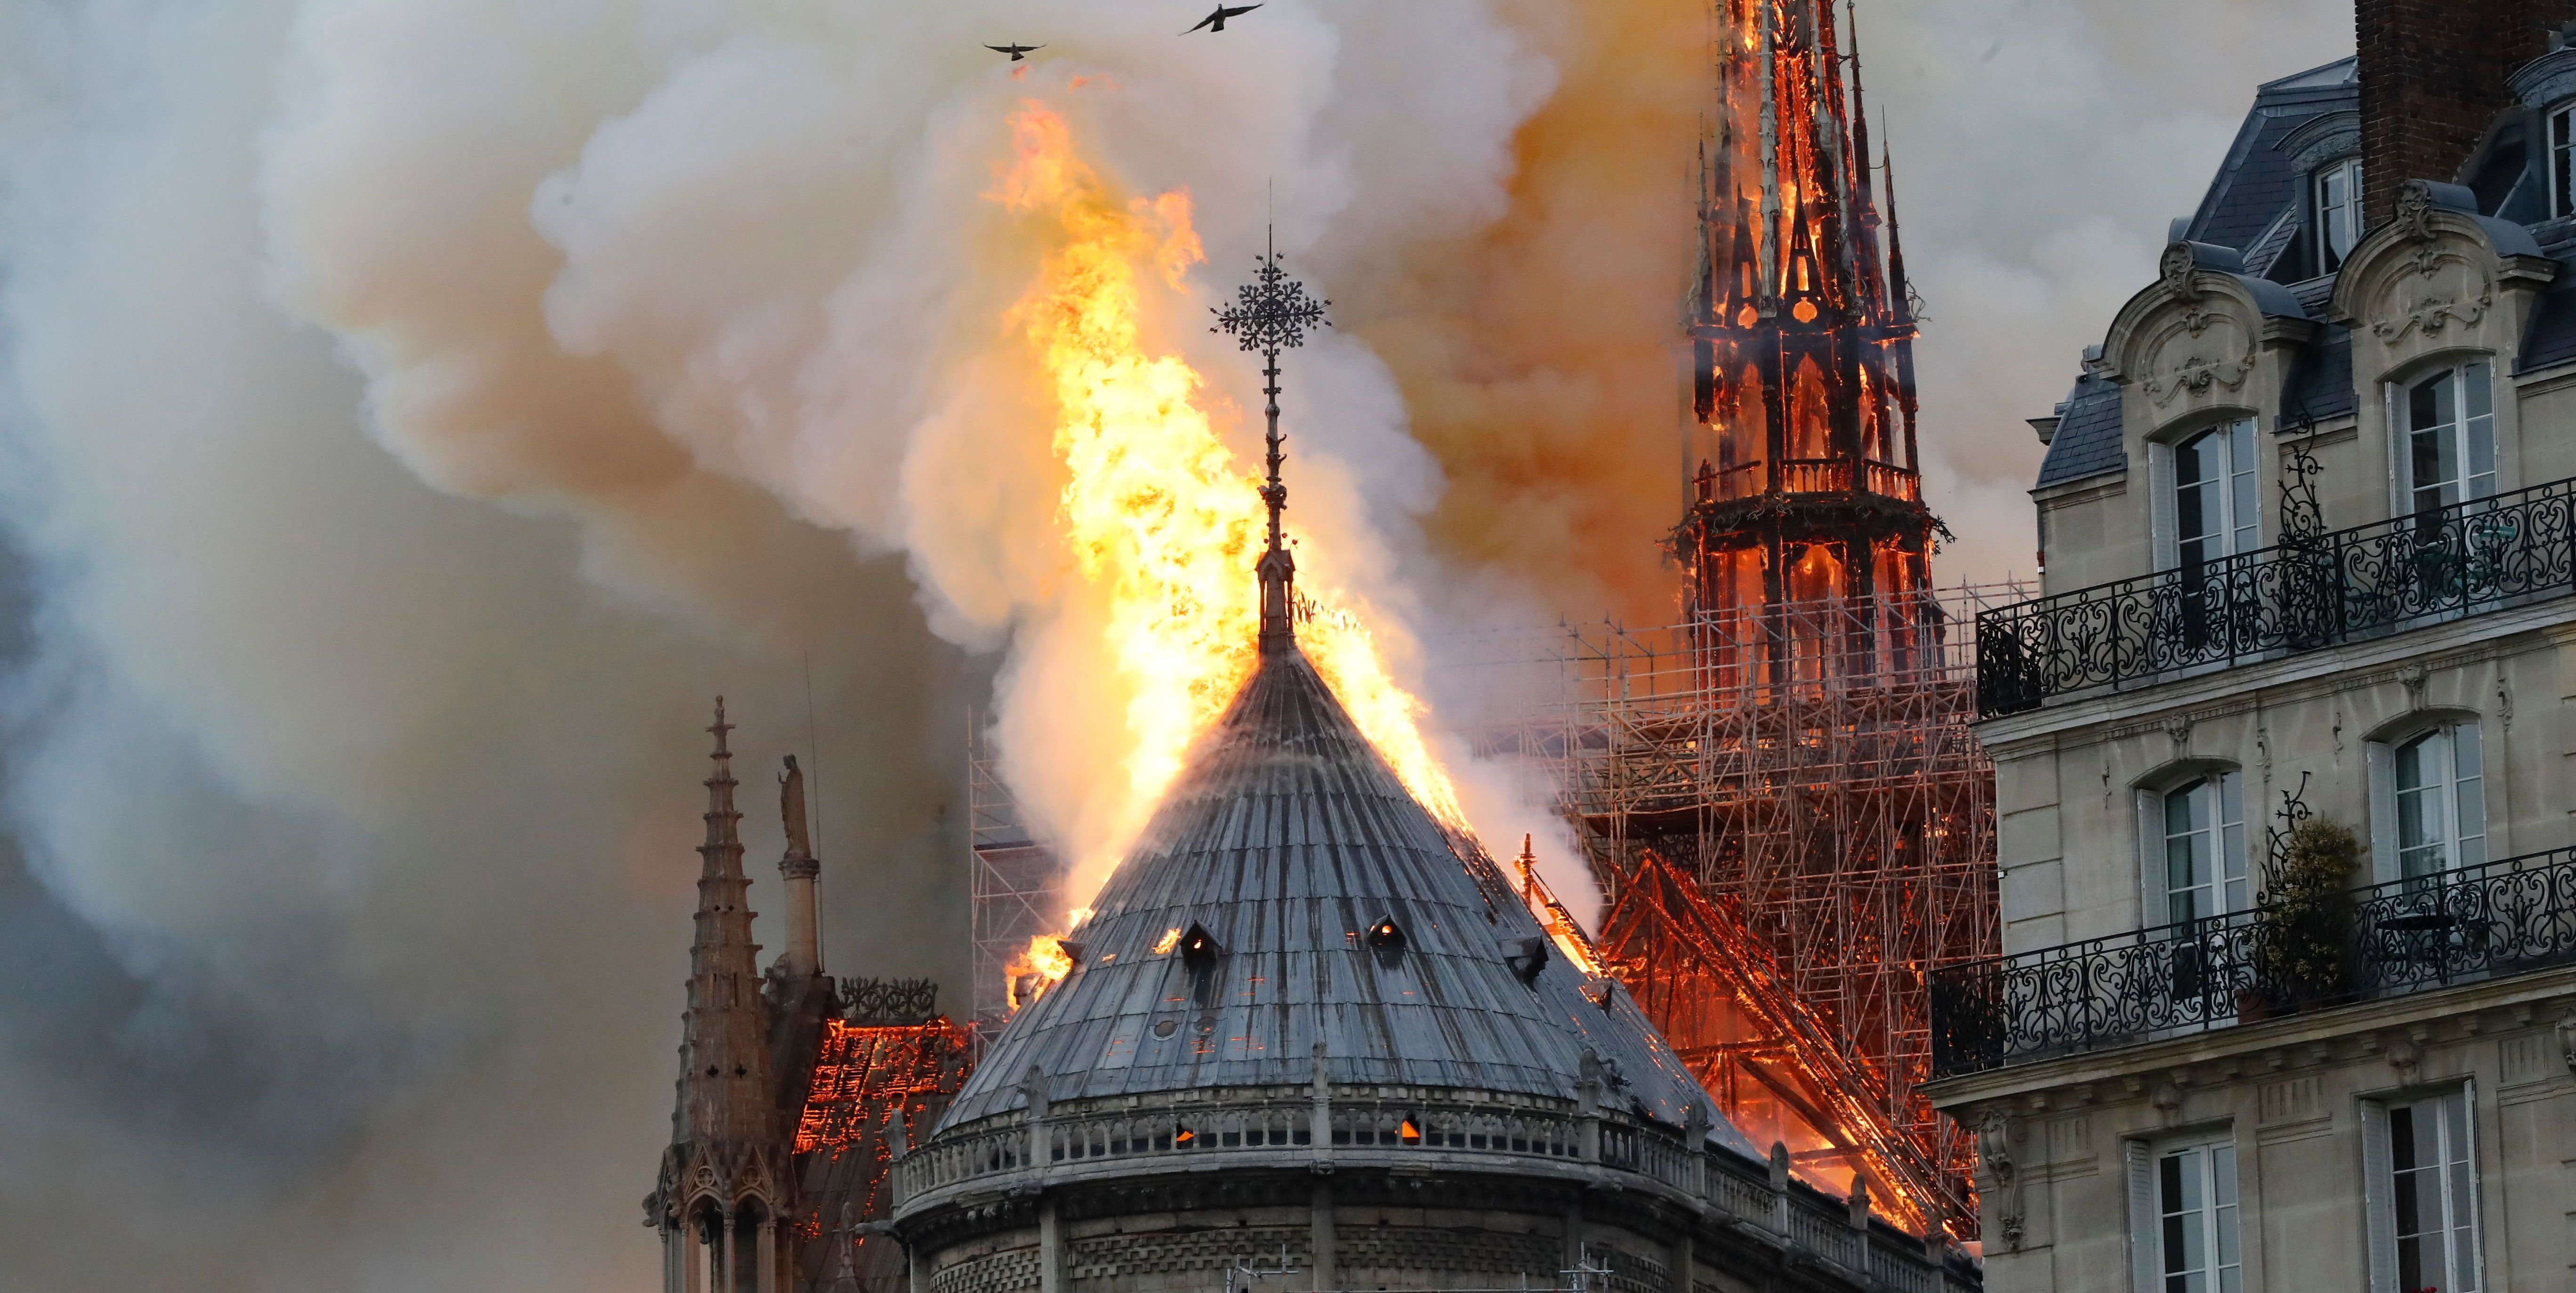 The Videos of Notre Dame Cathedral in Paris Burning Are Absolutely Horrific